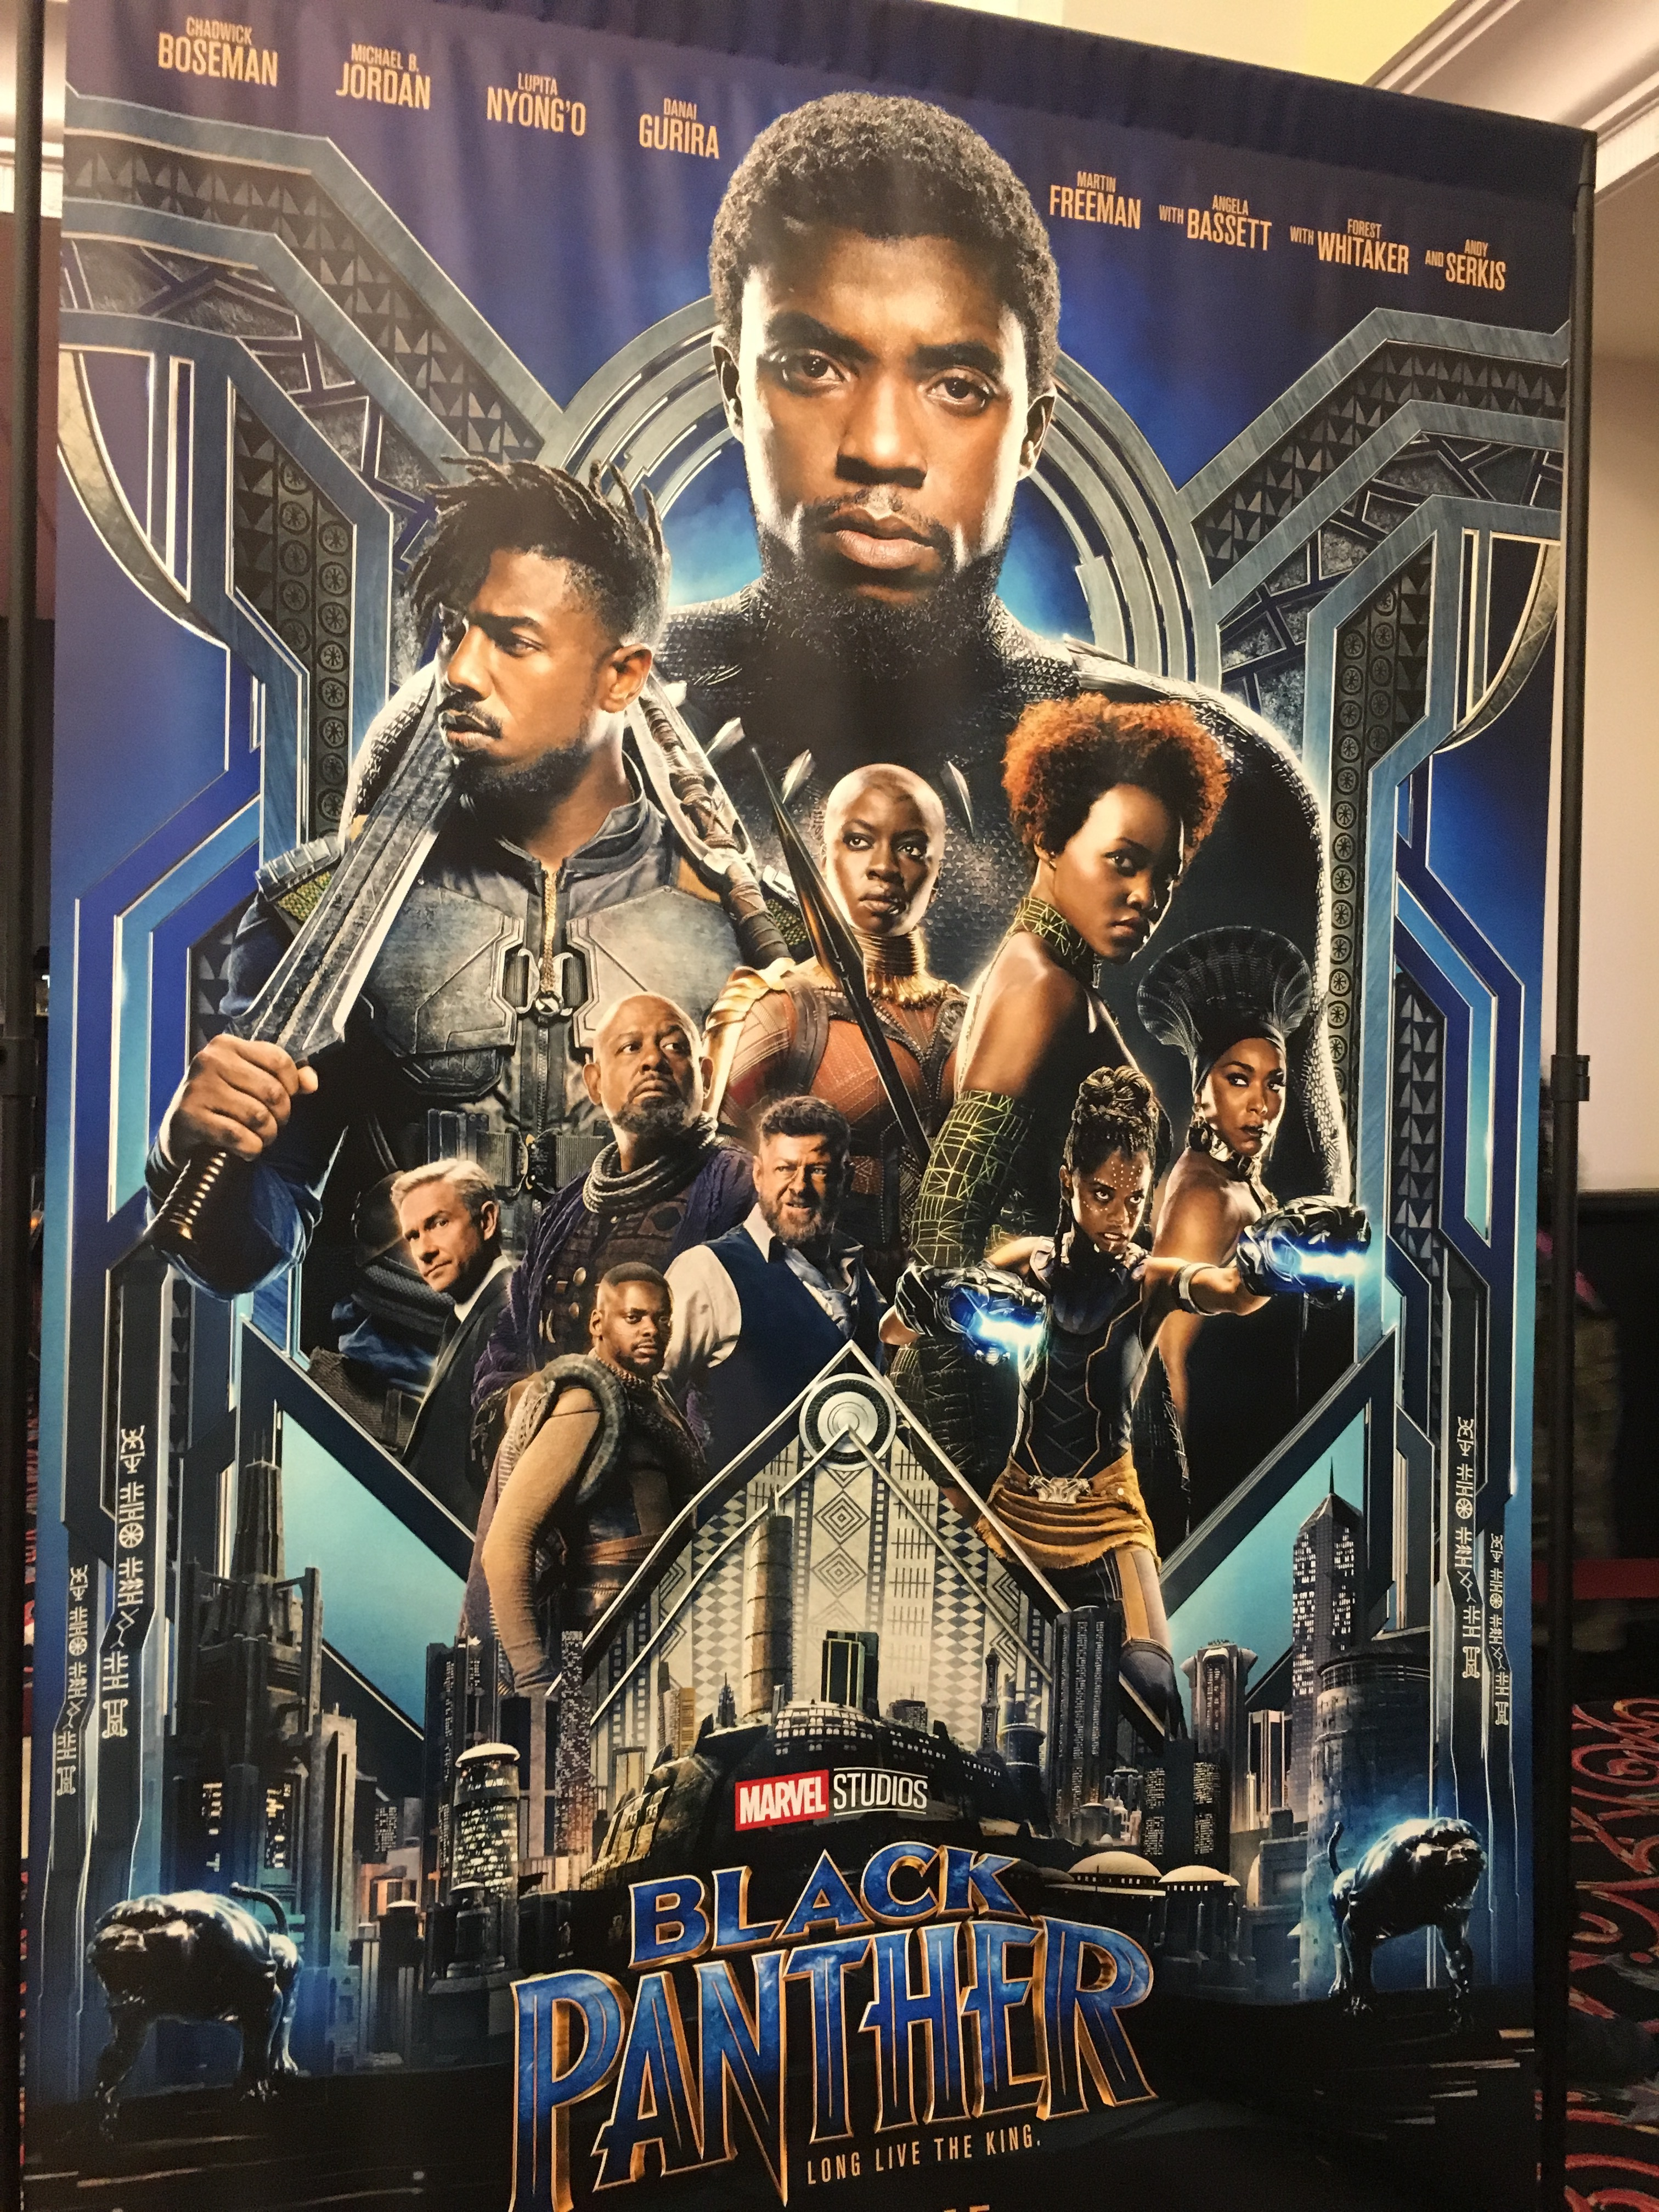 Disney's The Black Panther gets 4 of 4 paws